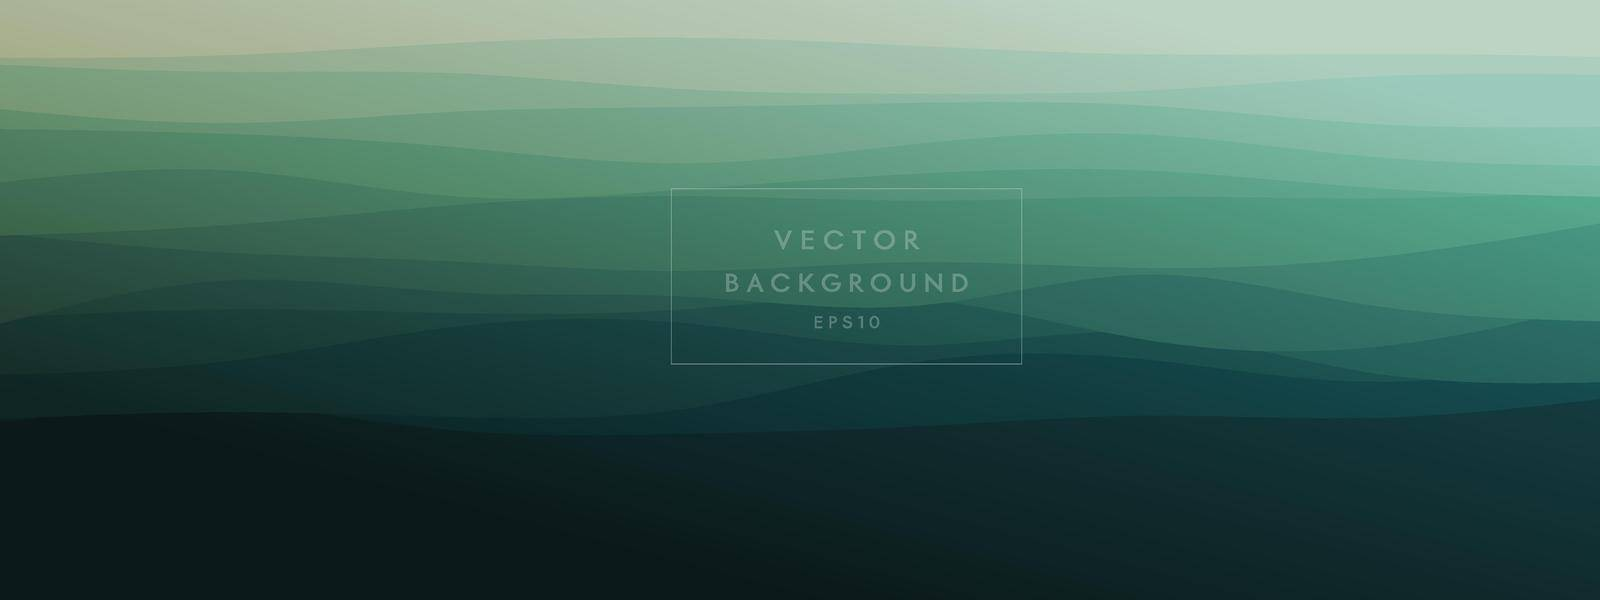 abstract wavy lines geometric trendy gradient  background natural dark green combined color. Modern template for poster business card landing page website. vector illustration eps 10 by MariaTem